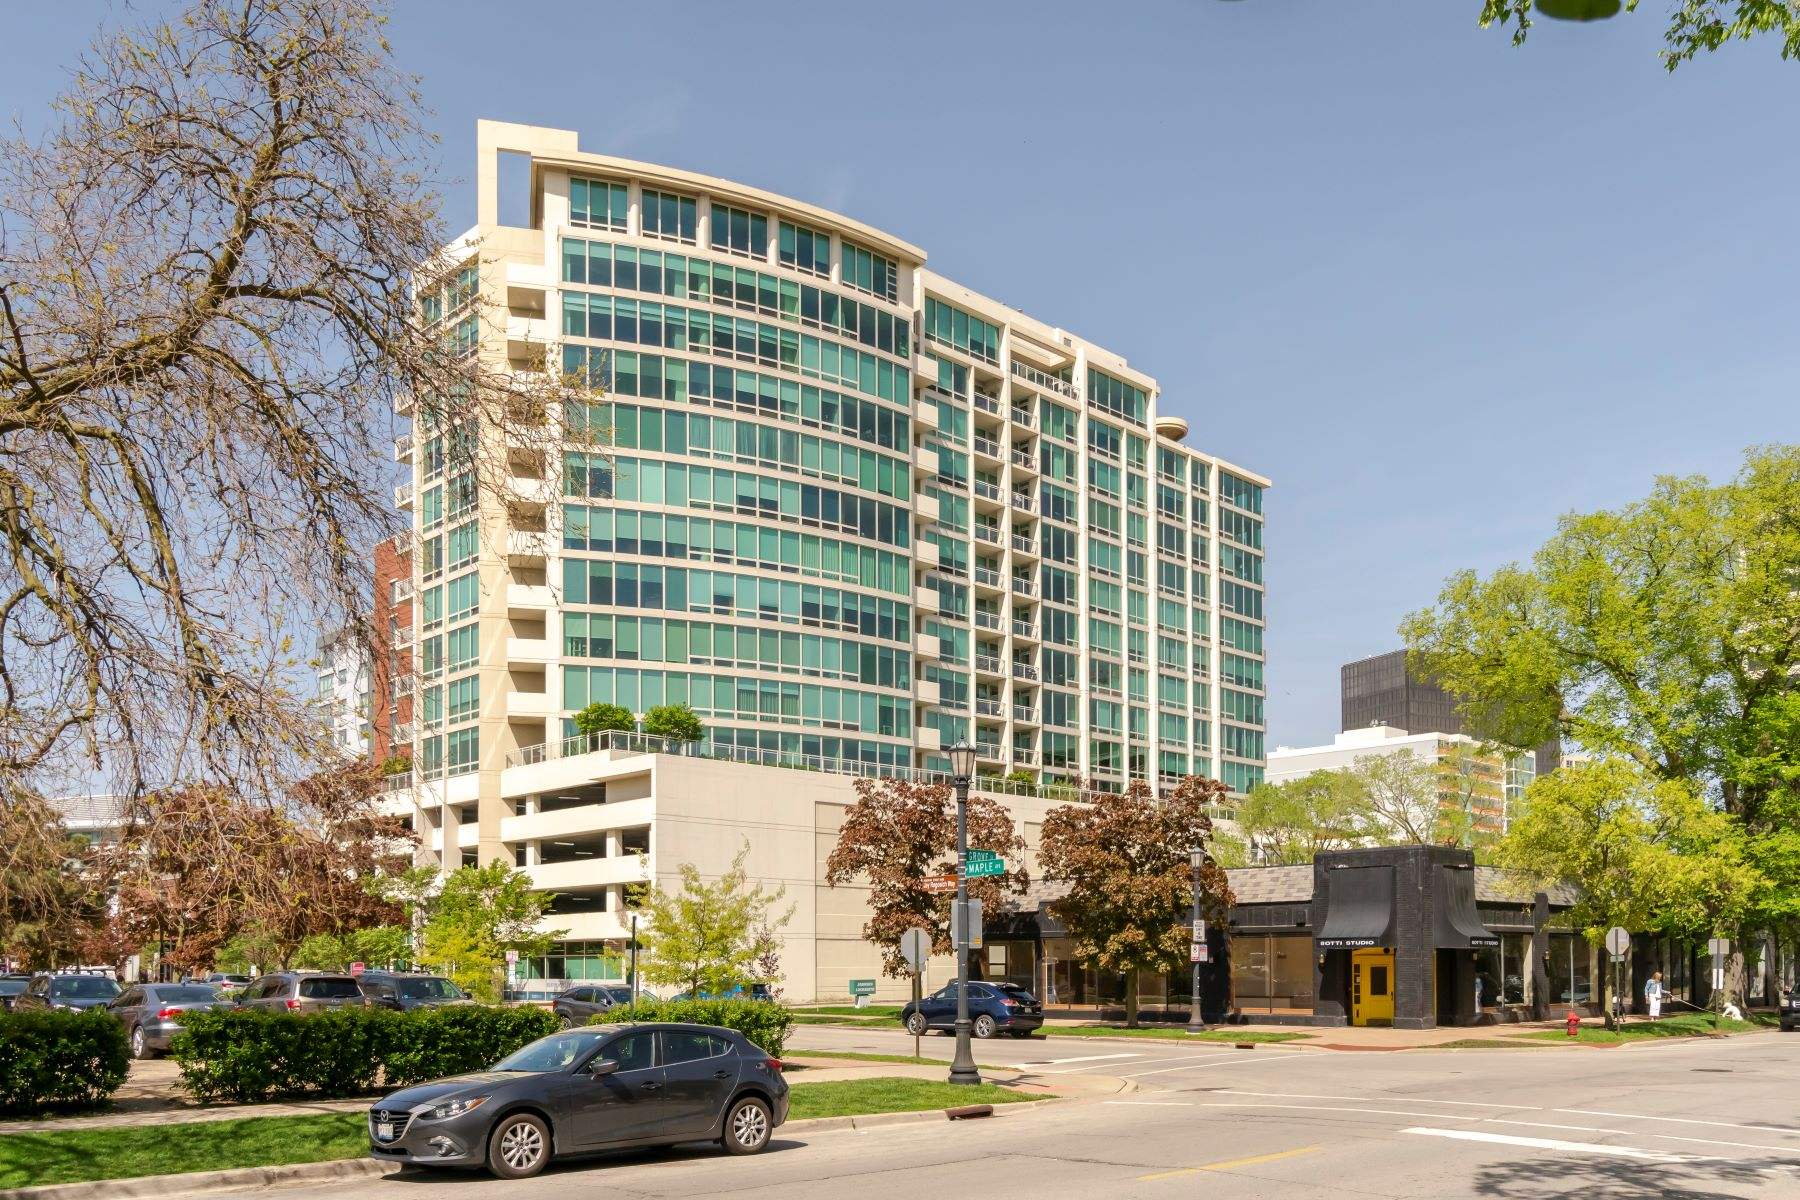 Single Family Homes for Active at Exceptional Penthouse in Evanston's Premier Intimate Building 1570 Elmwood Avenue Unit 1503 Evanston, Illinois 60201 United States